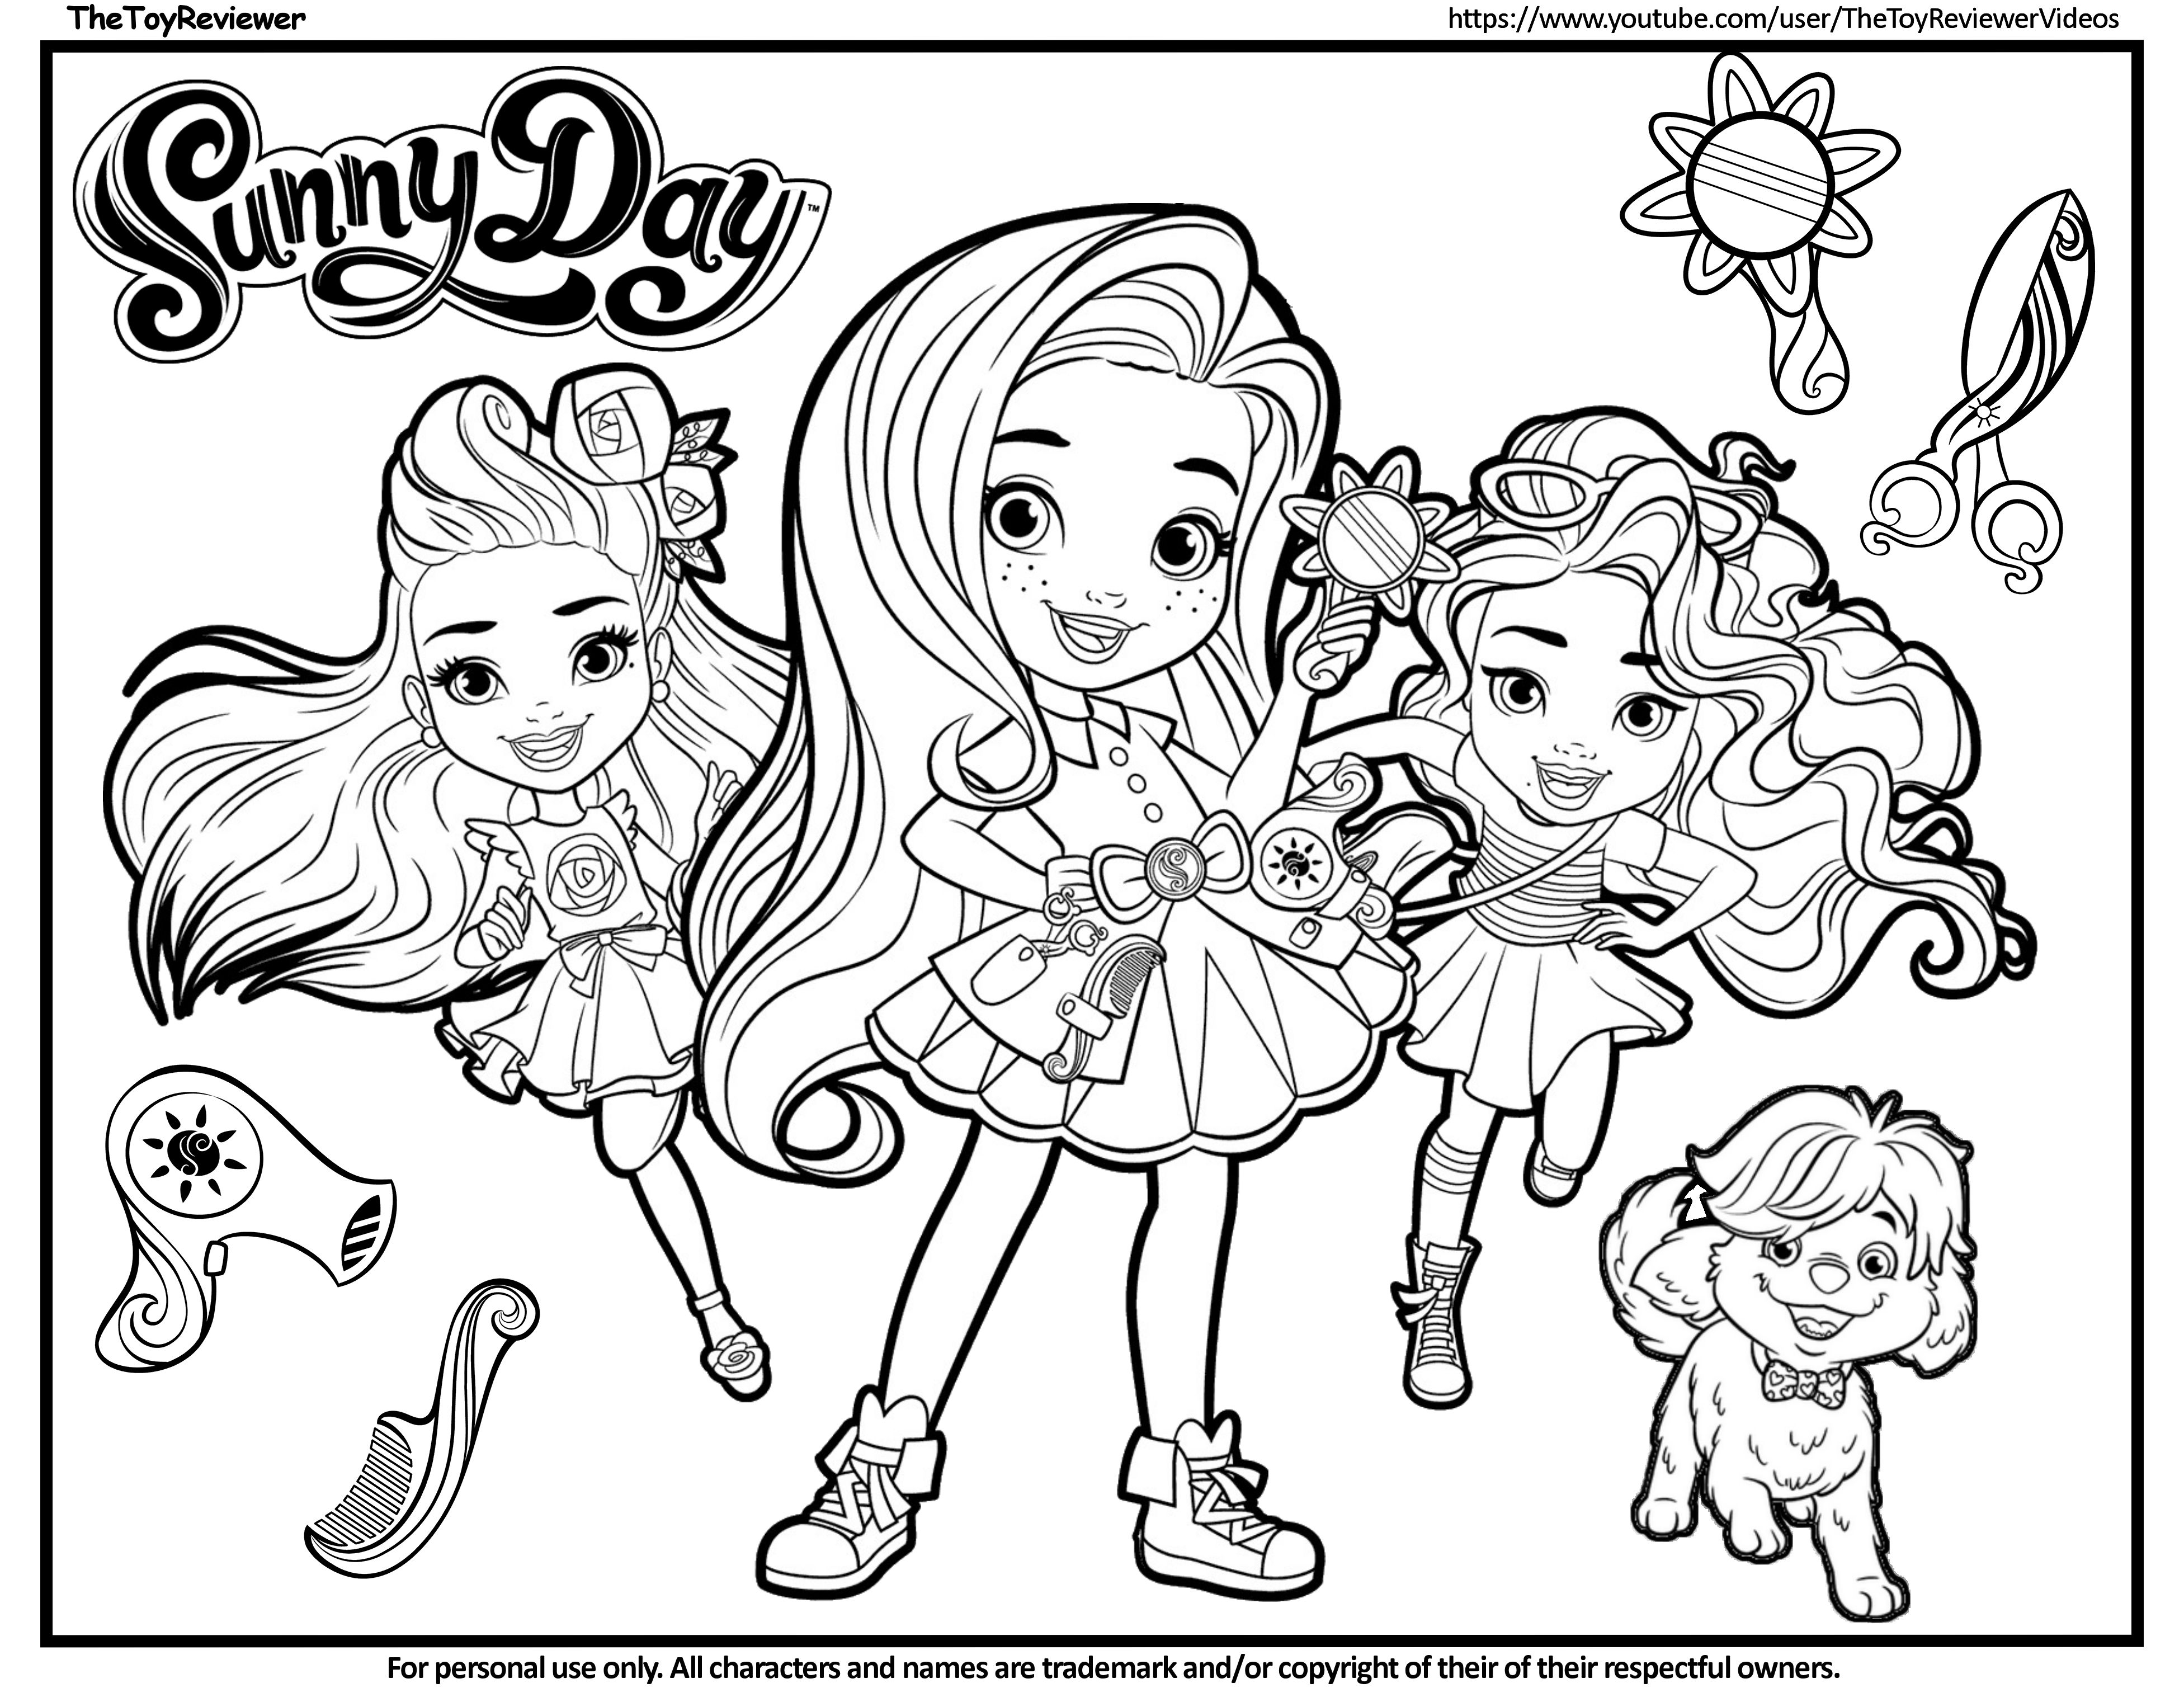 Here Is The Sunny Day Coloring Page Click The Picture To See My Coloring Video Coloring Books Coloring Pages Coloring Book Pages